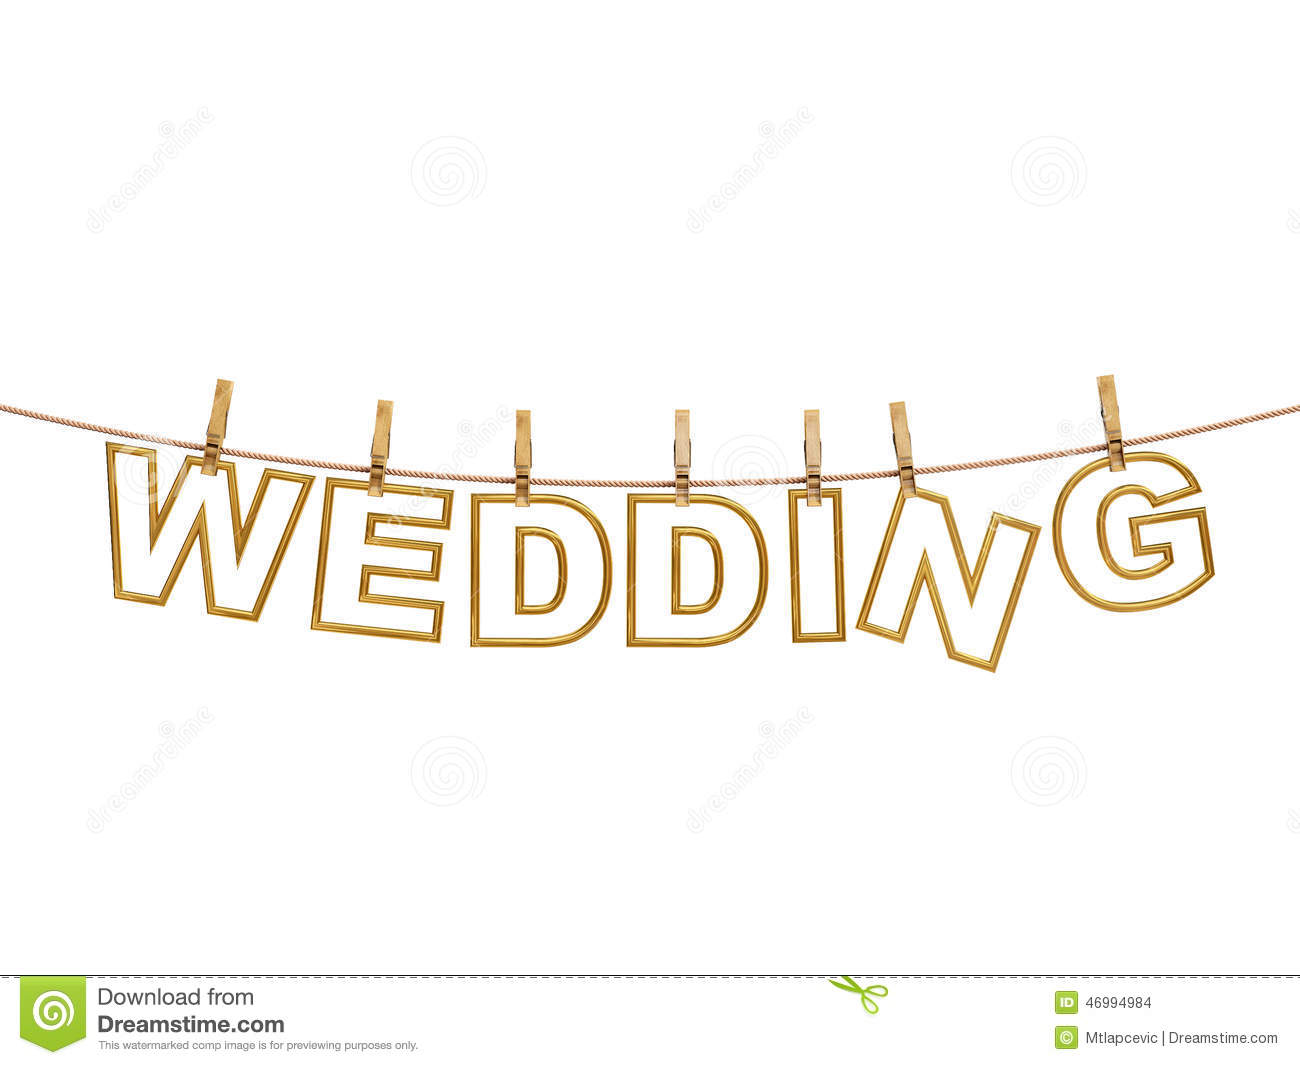 Golden Wedding Letters Hanging On Rope With Clothespins Isolated On White Wedding Invitation